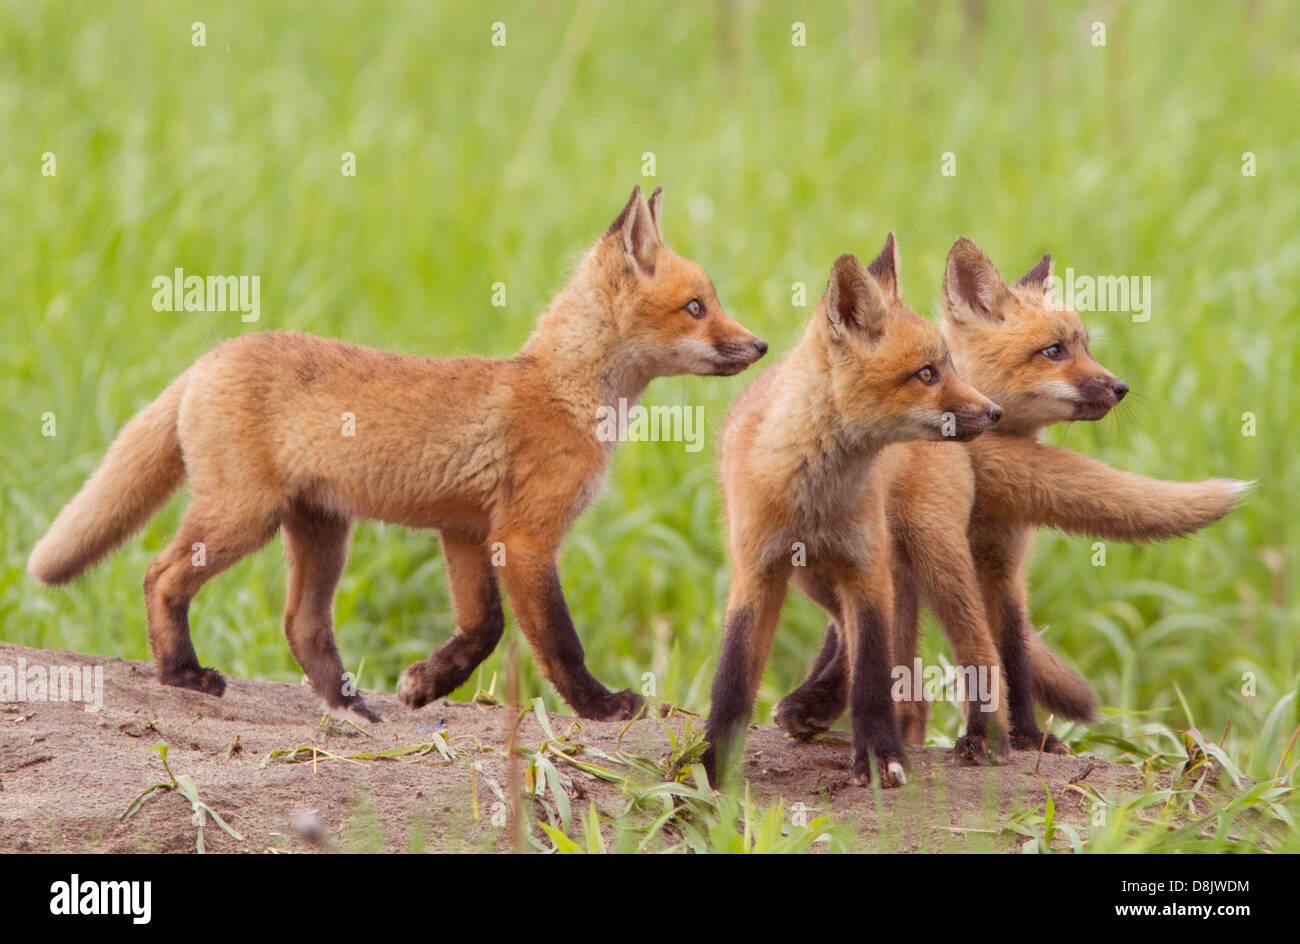 Three Red fox cubs (Vulpes vulpes) looking for ducks. - Stock Image